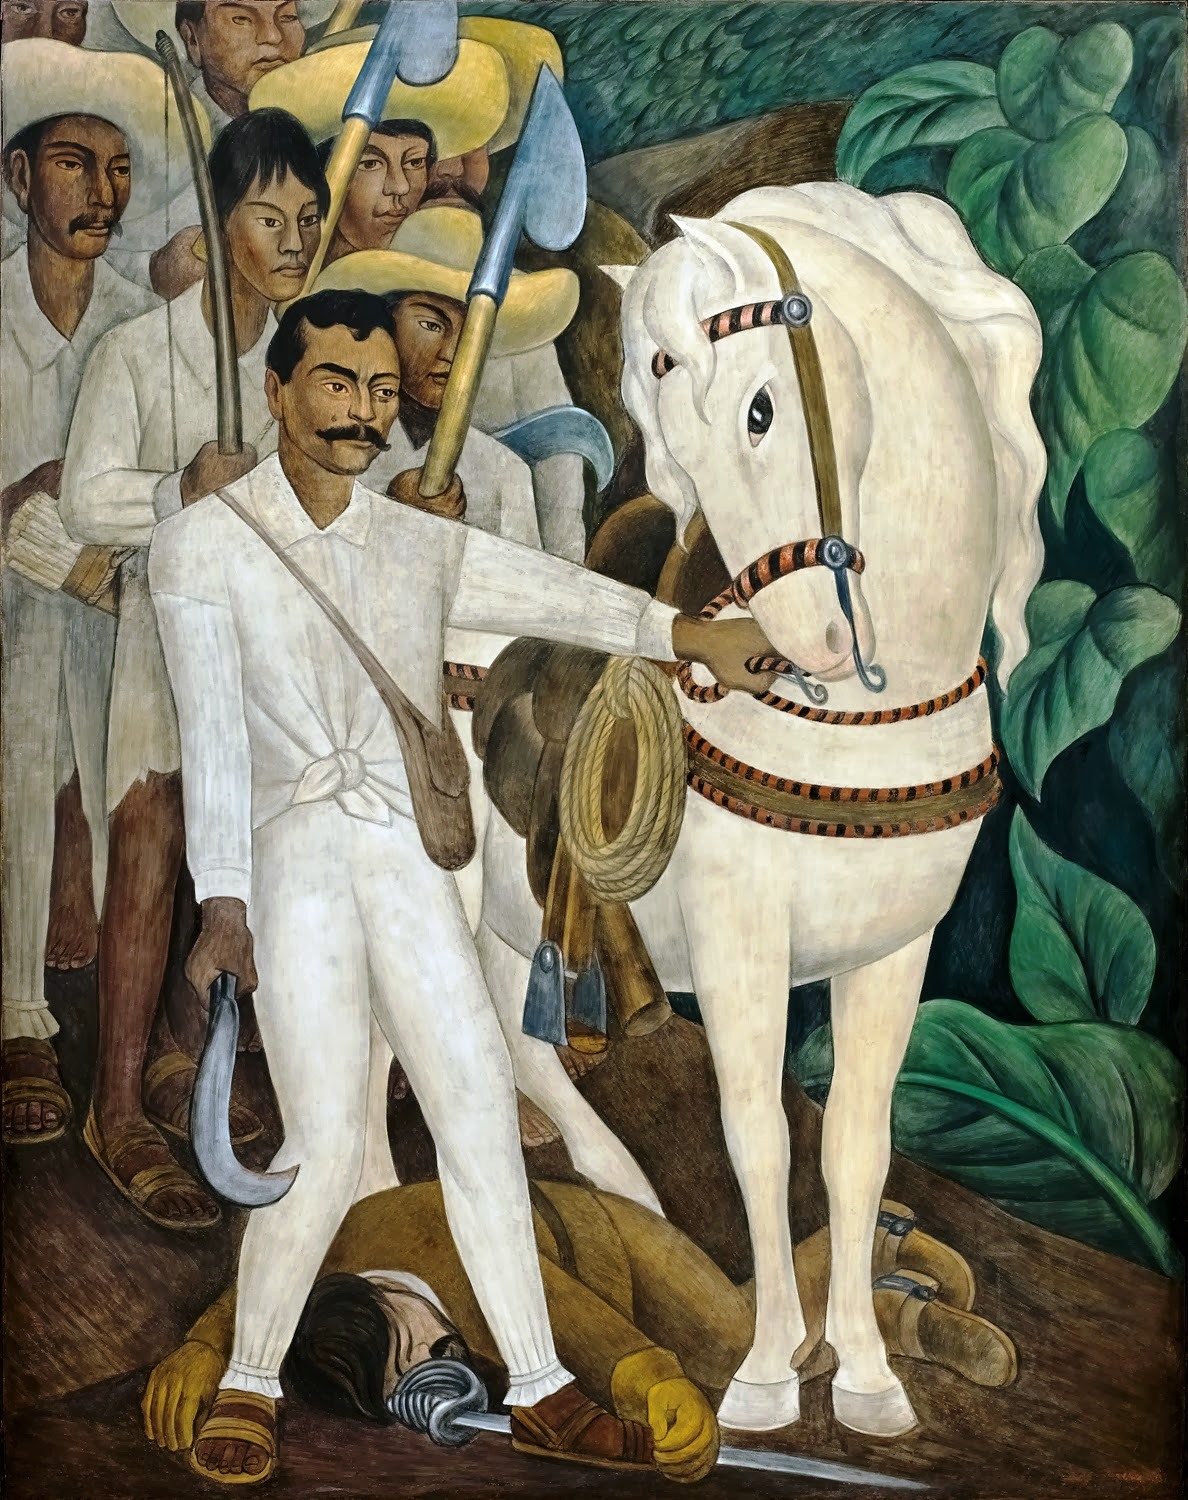 Mural of Emiliano Zapata and Displaced Mexican Campesinos by Diego Rivera, Palacio de Cortés, Cuernavaca, Mexico